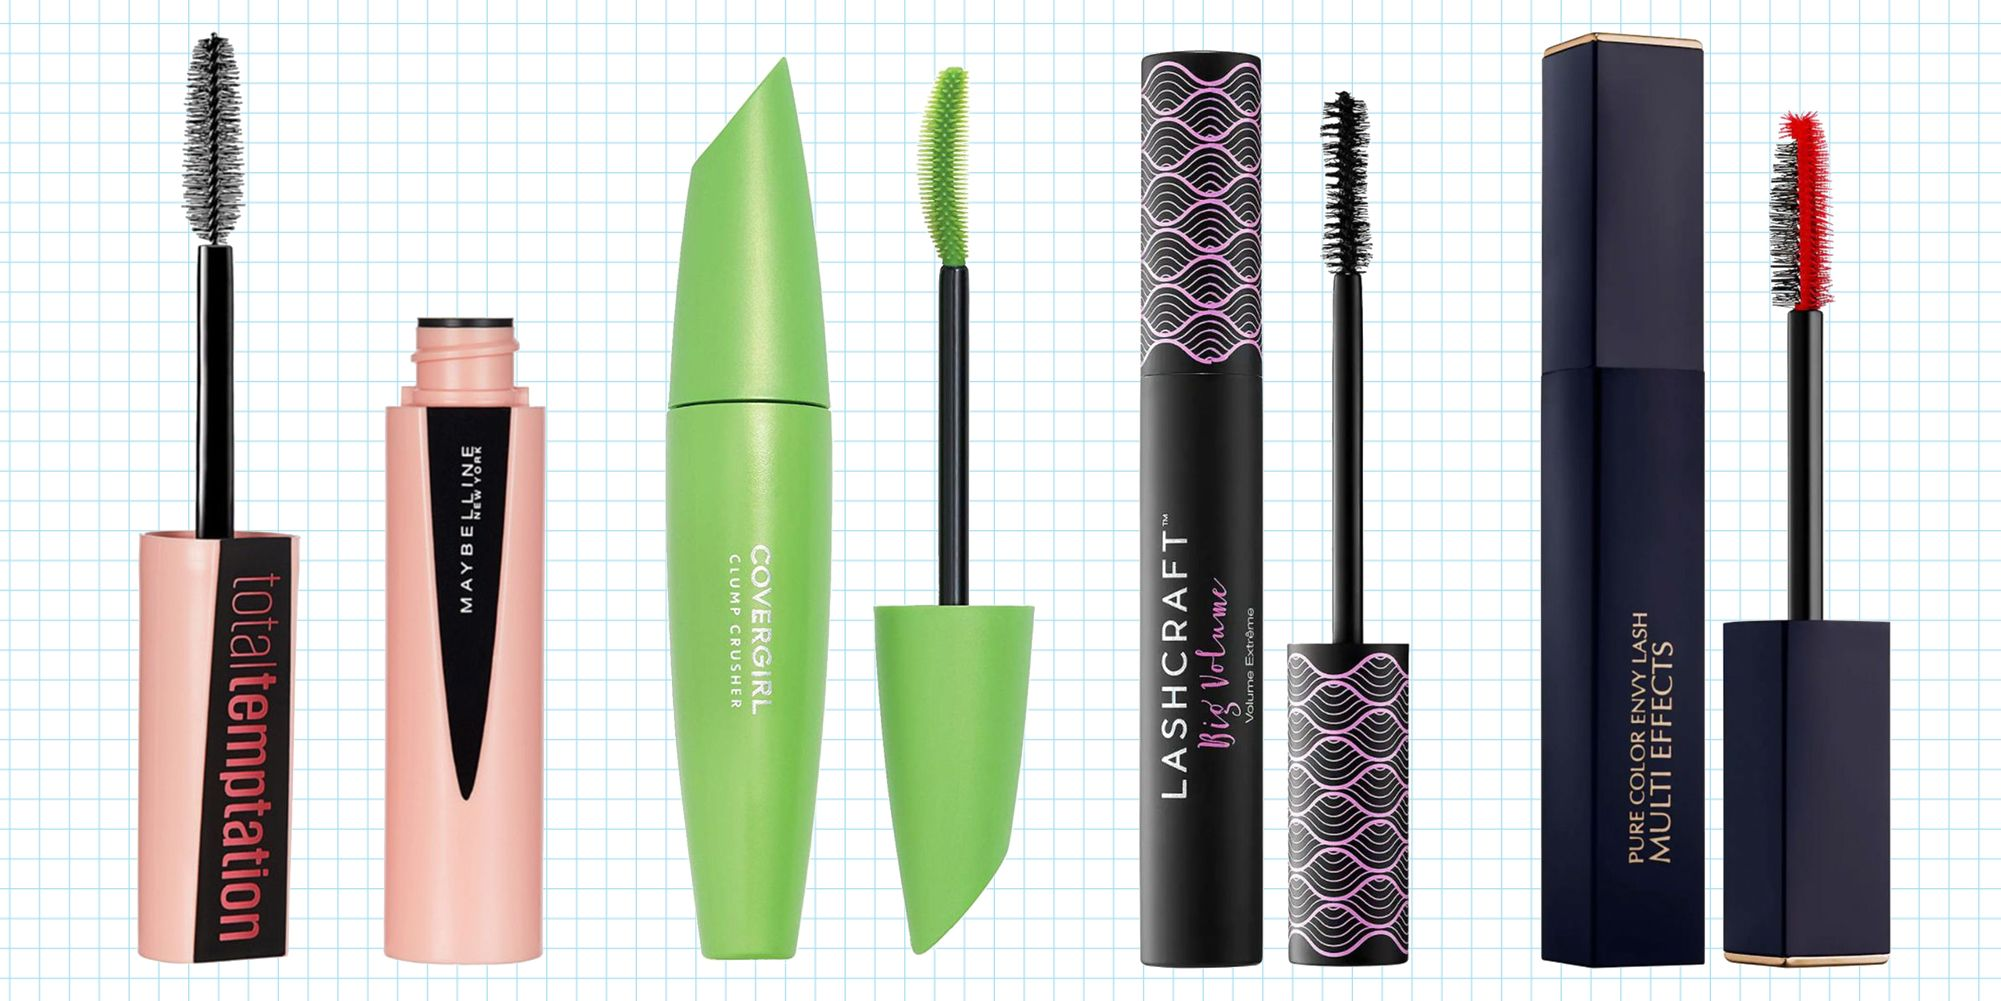 faa098c203e 7 Best Mascaras 2019 - Top Mascara Reviews